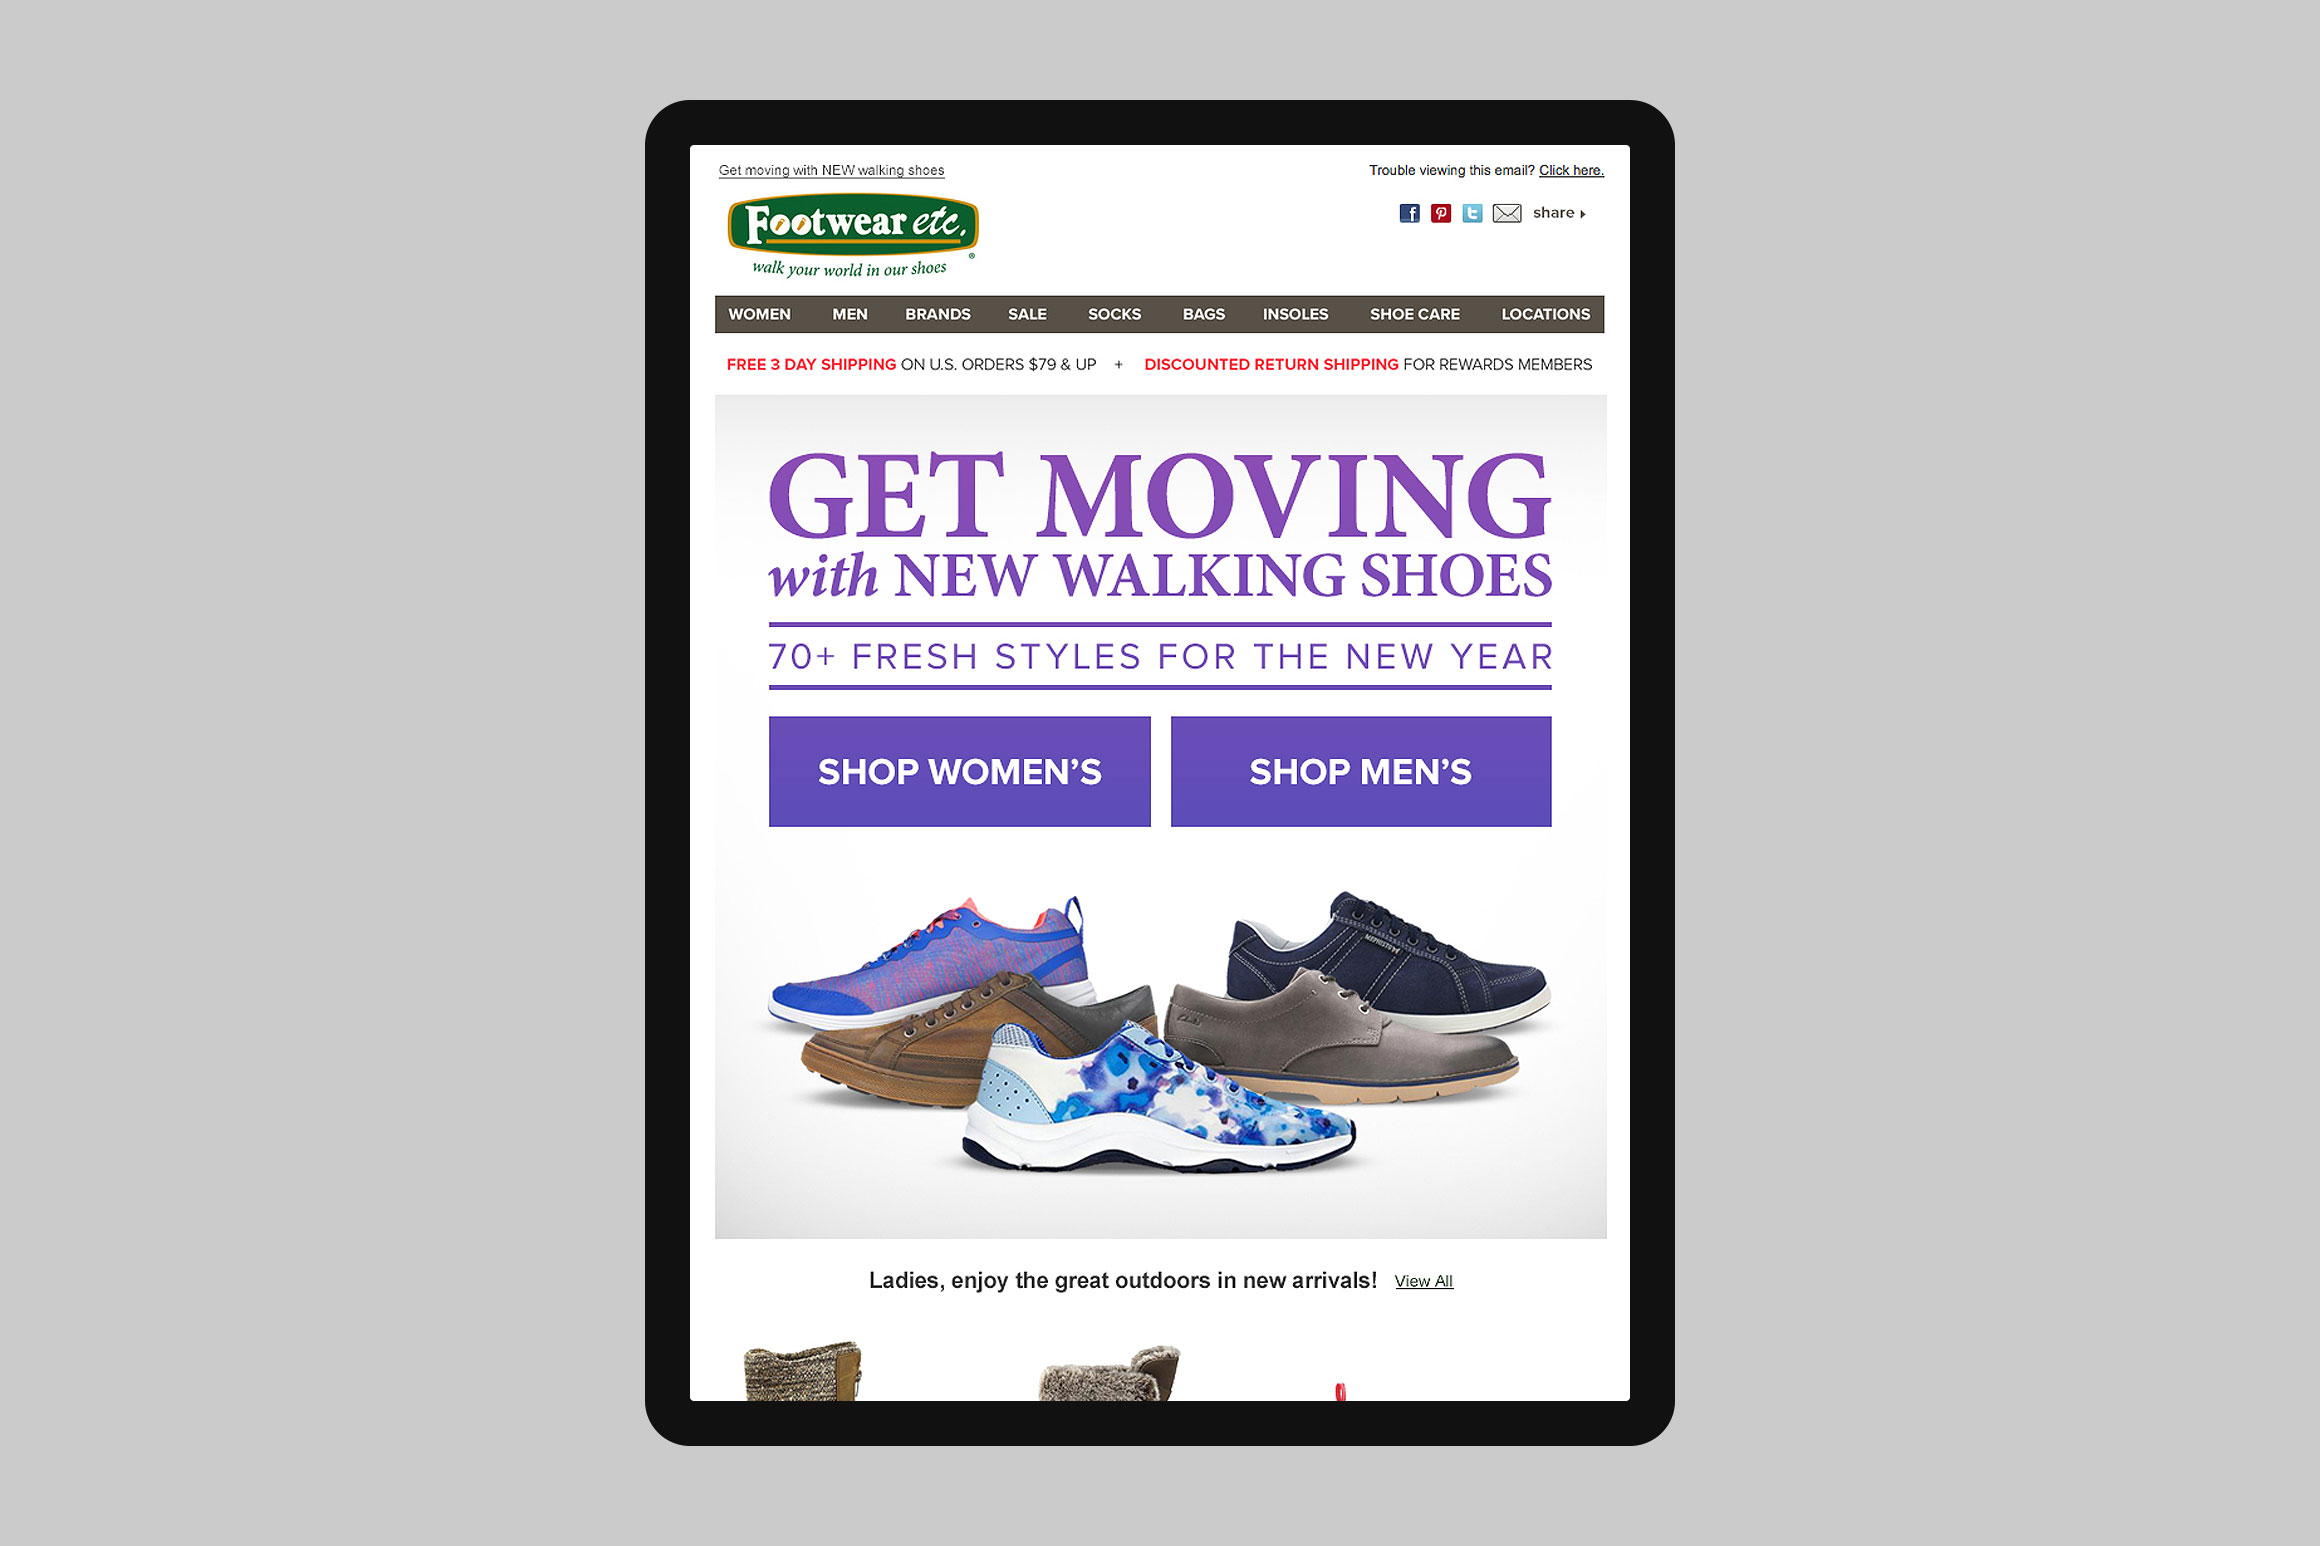 Footwear etc. Email Template #1